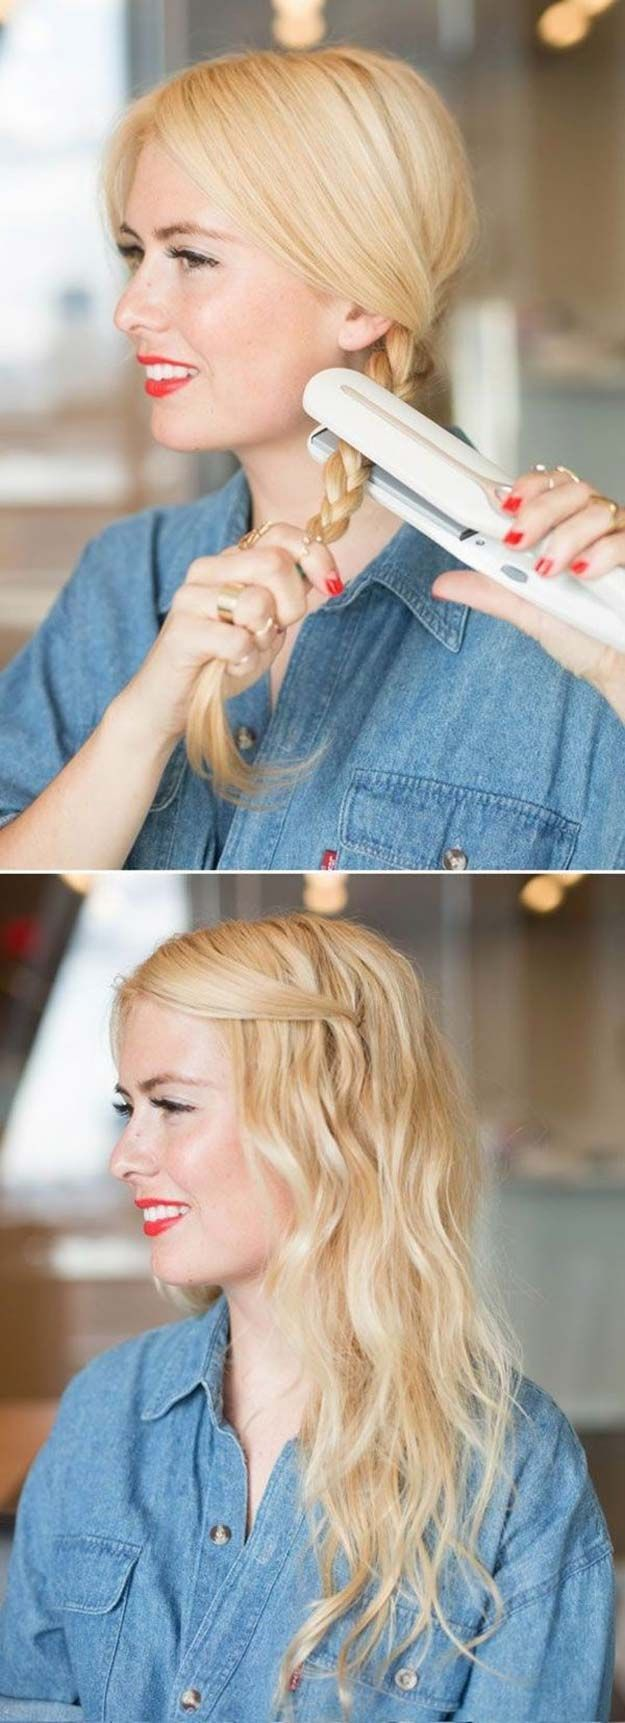 Cool and Easy DIY Hairstyles - 5 Minute Office Friendly Hairstyle - Quick and Ea...